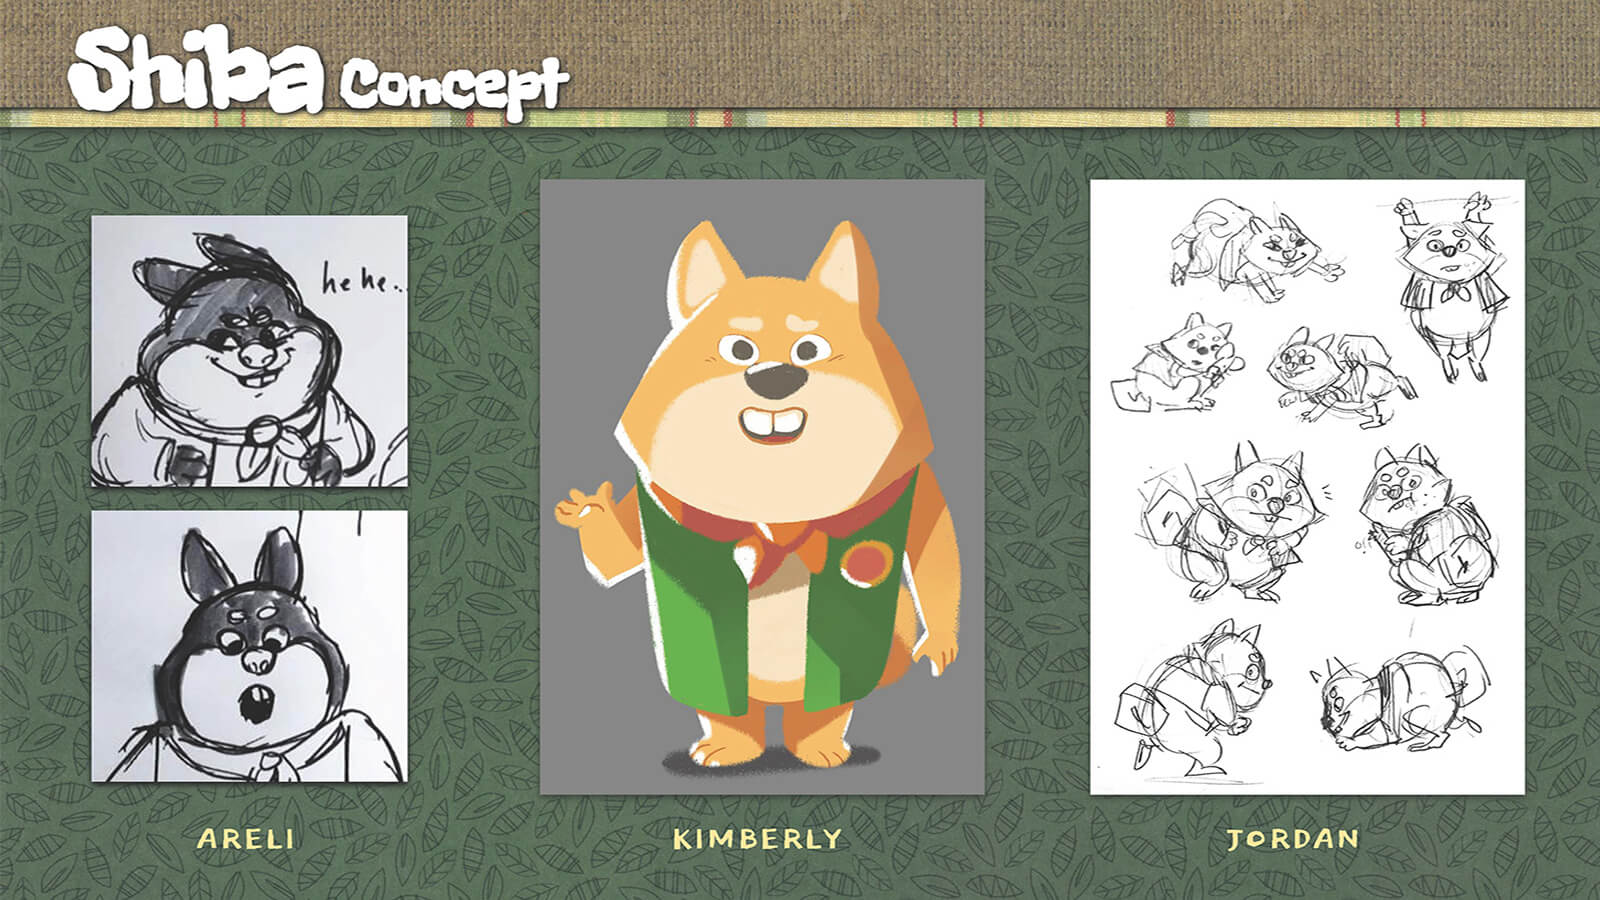 Concept art and sketches of the character Shiba.